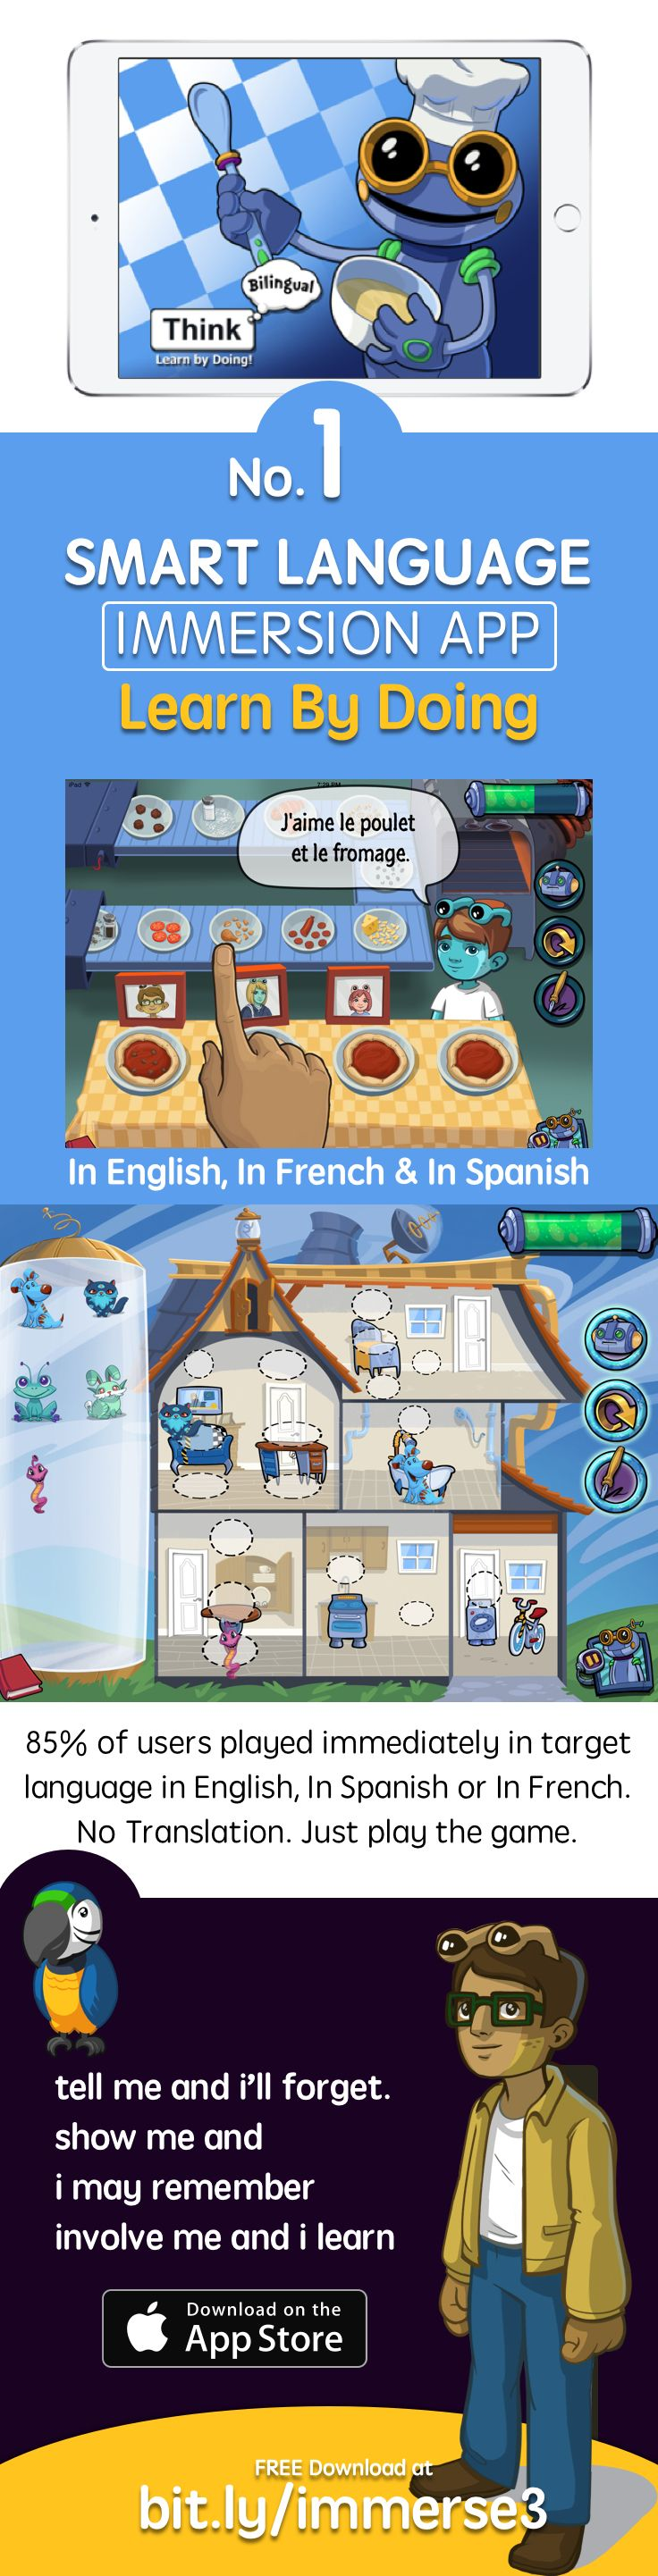 Learn Spanish using the first ever Immersion app https://itunes.apple.com/app/apple-store/id1086273809?pt=1948807&ct=jraug&mt=8&utm_source=pinterest&utm_medium=oldpin&utm_campaign=junior&utm_term=beginner&utm_content=junioraugpin